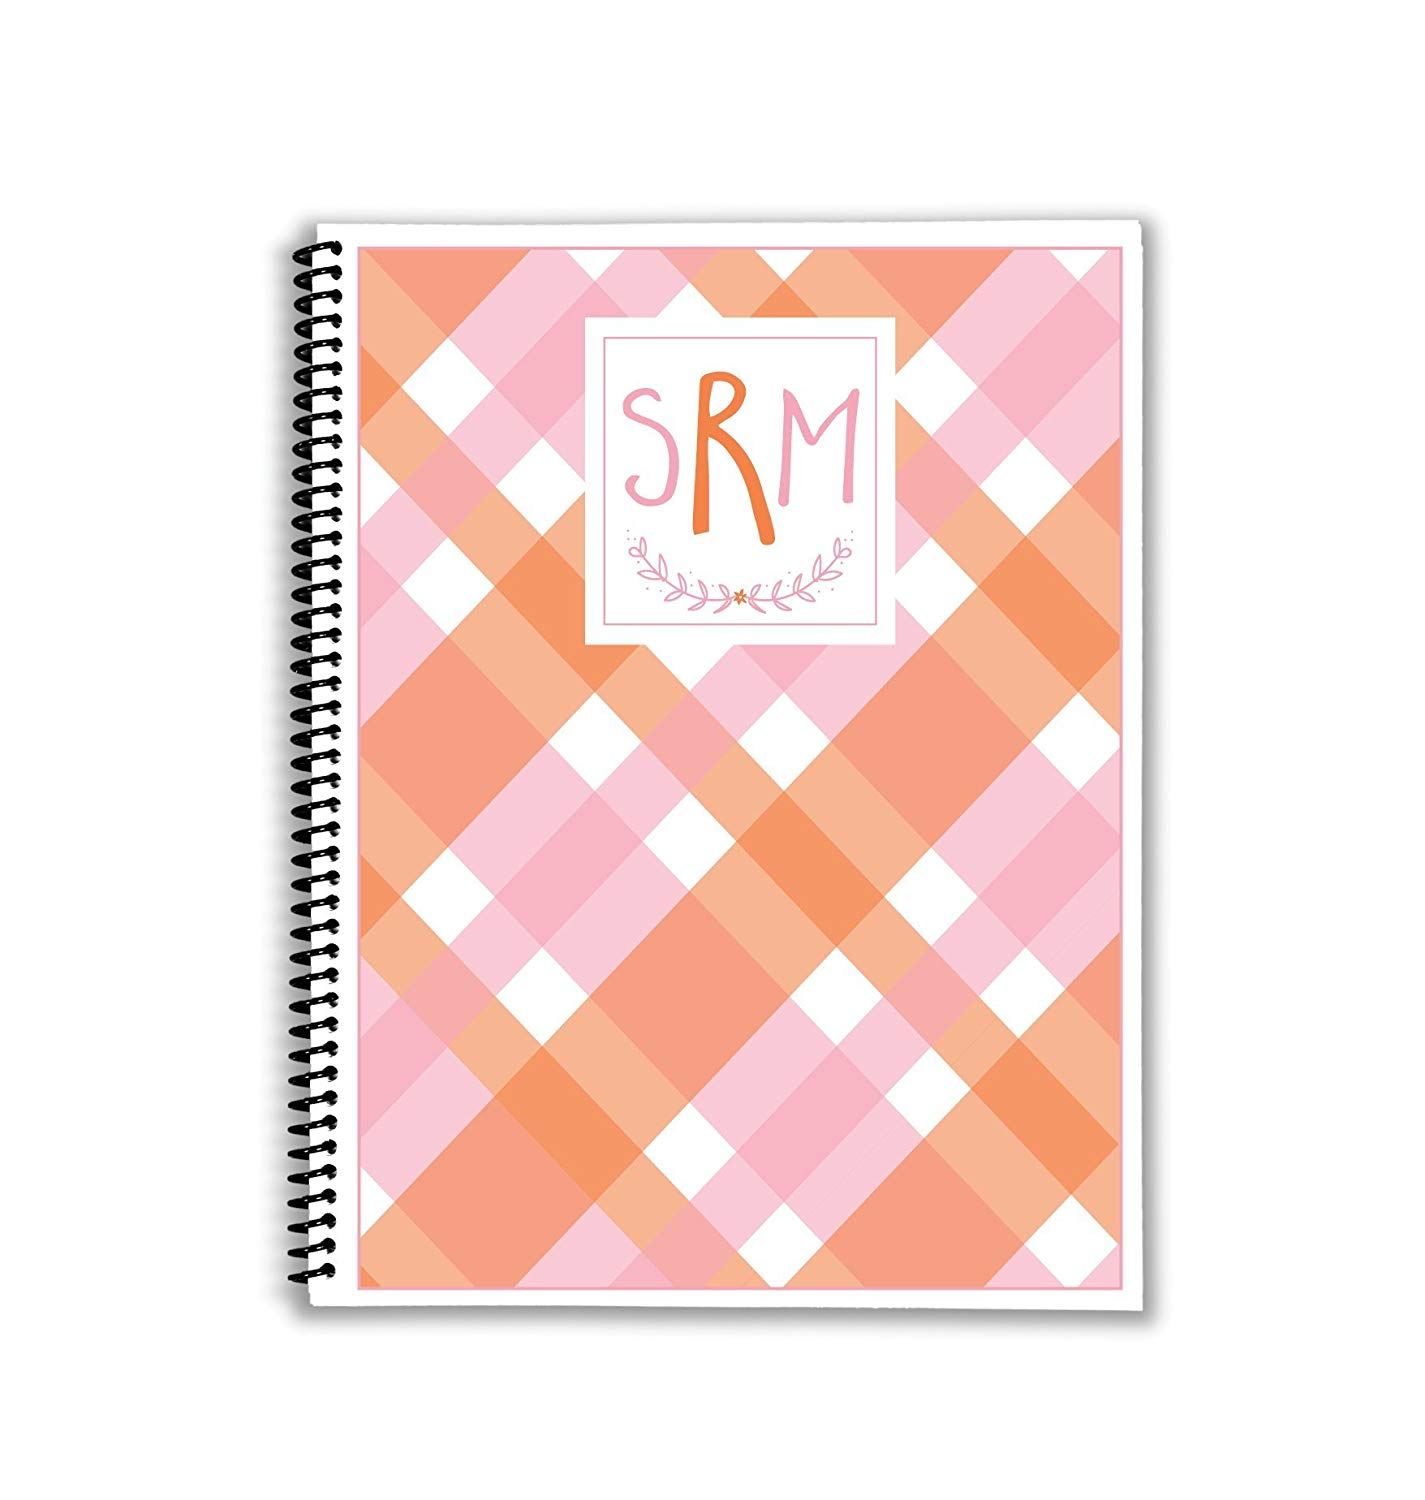 Mad About Pink Plaid Monthly and Weekly Meal Planner with Shopping Lists and Inventory Pages